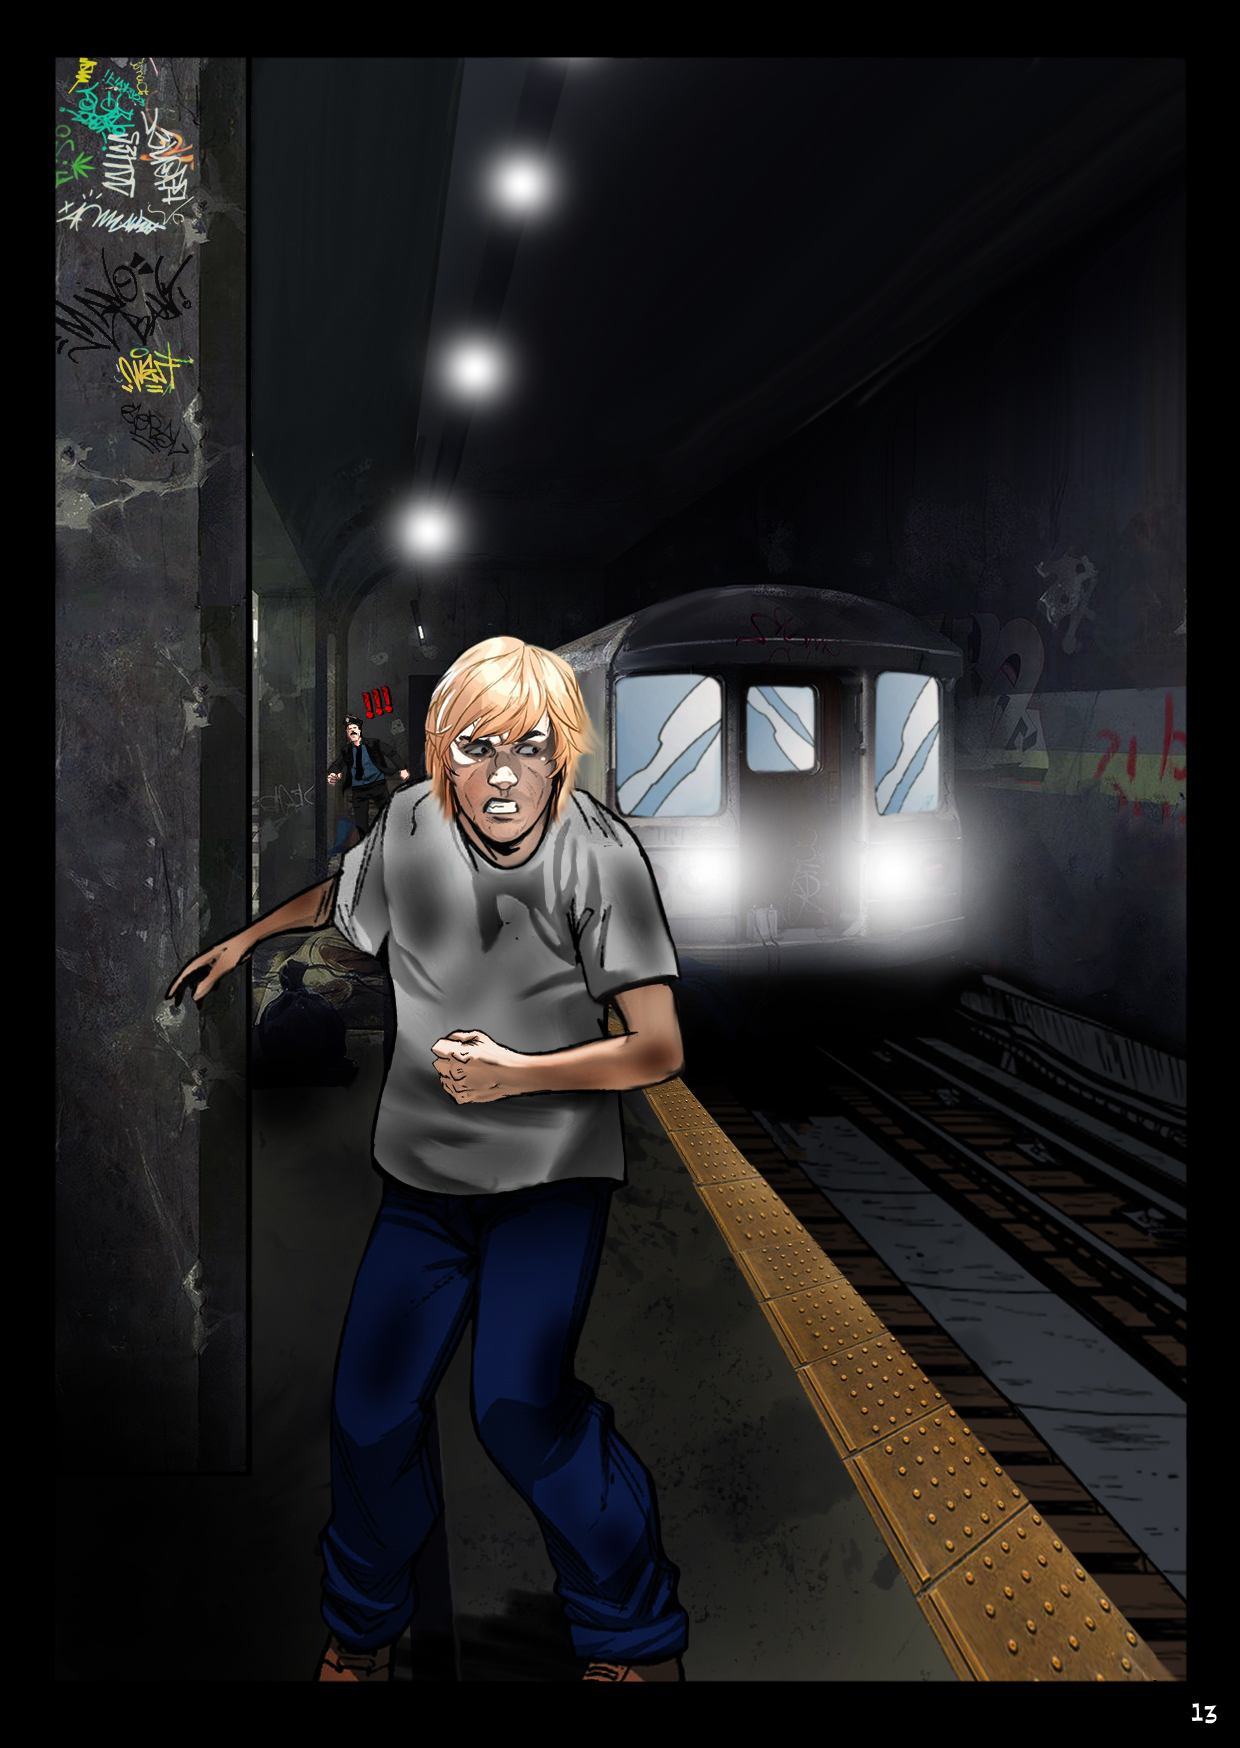 Bobby staggers down the subway platform as a train approaches and the cops are in distant pursuit.